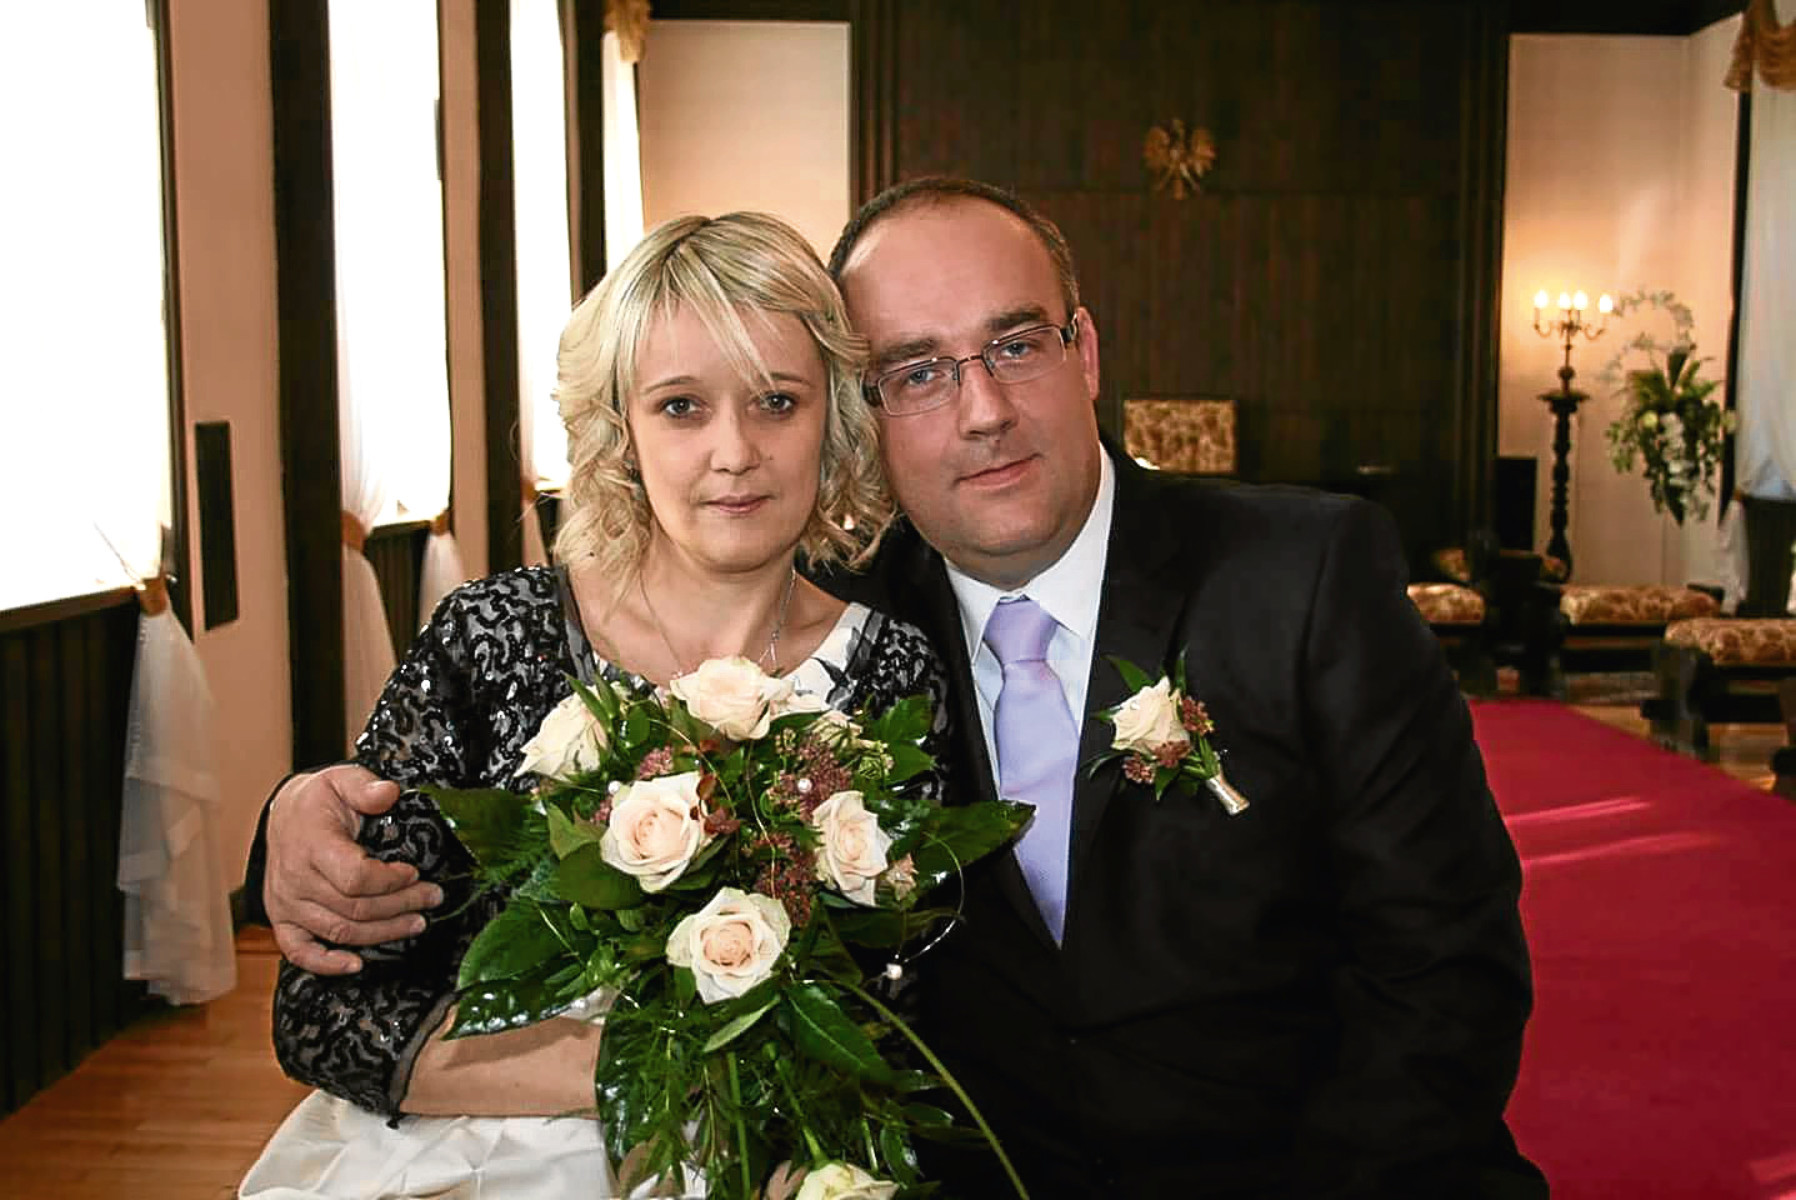 Ewa with Janusz on their wedding day in October 2013.